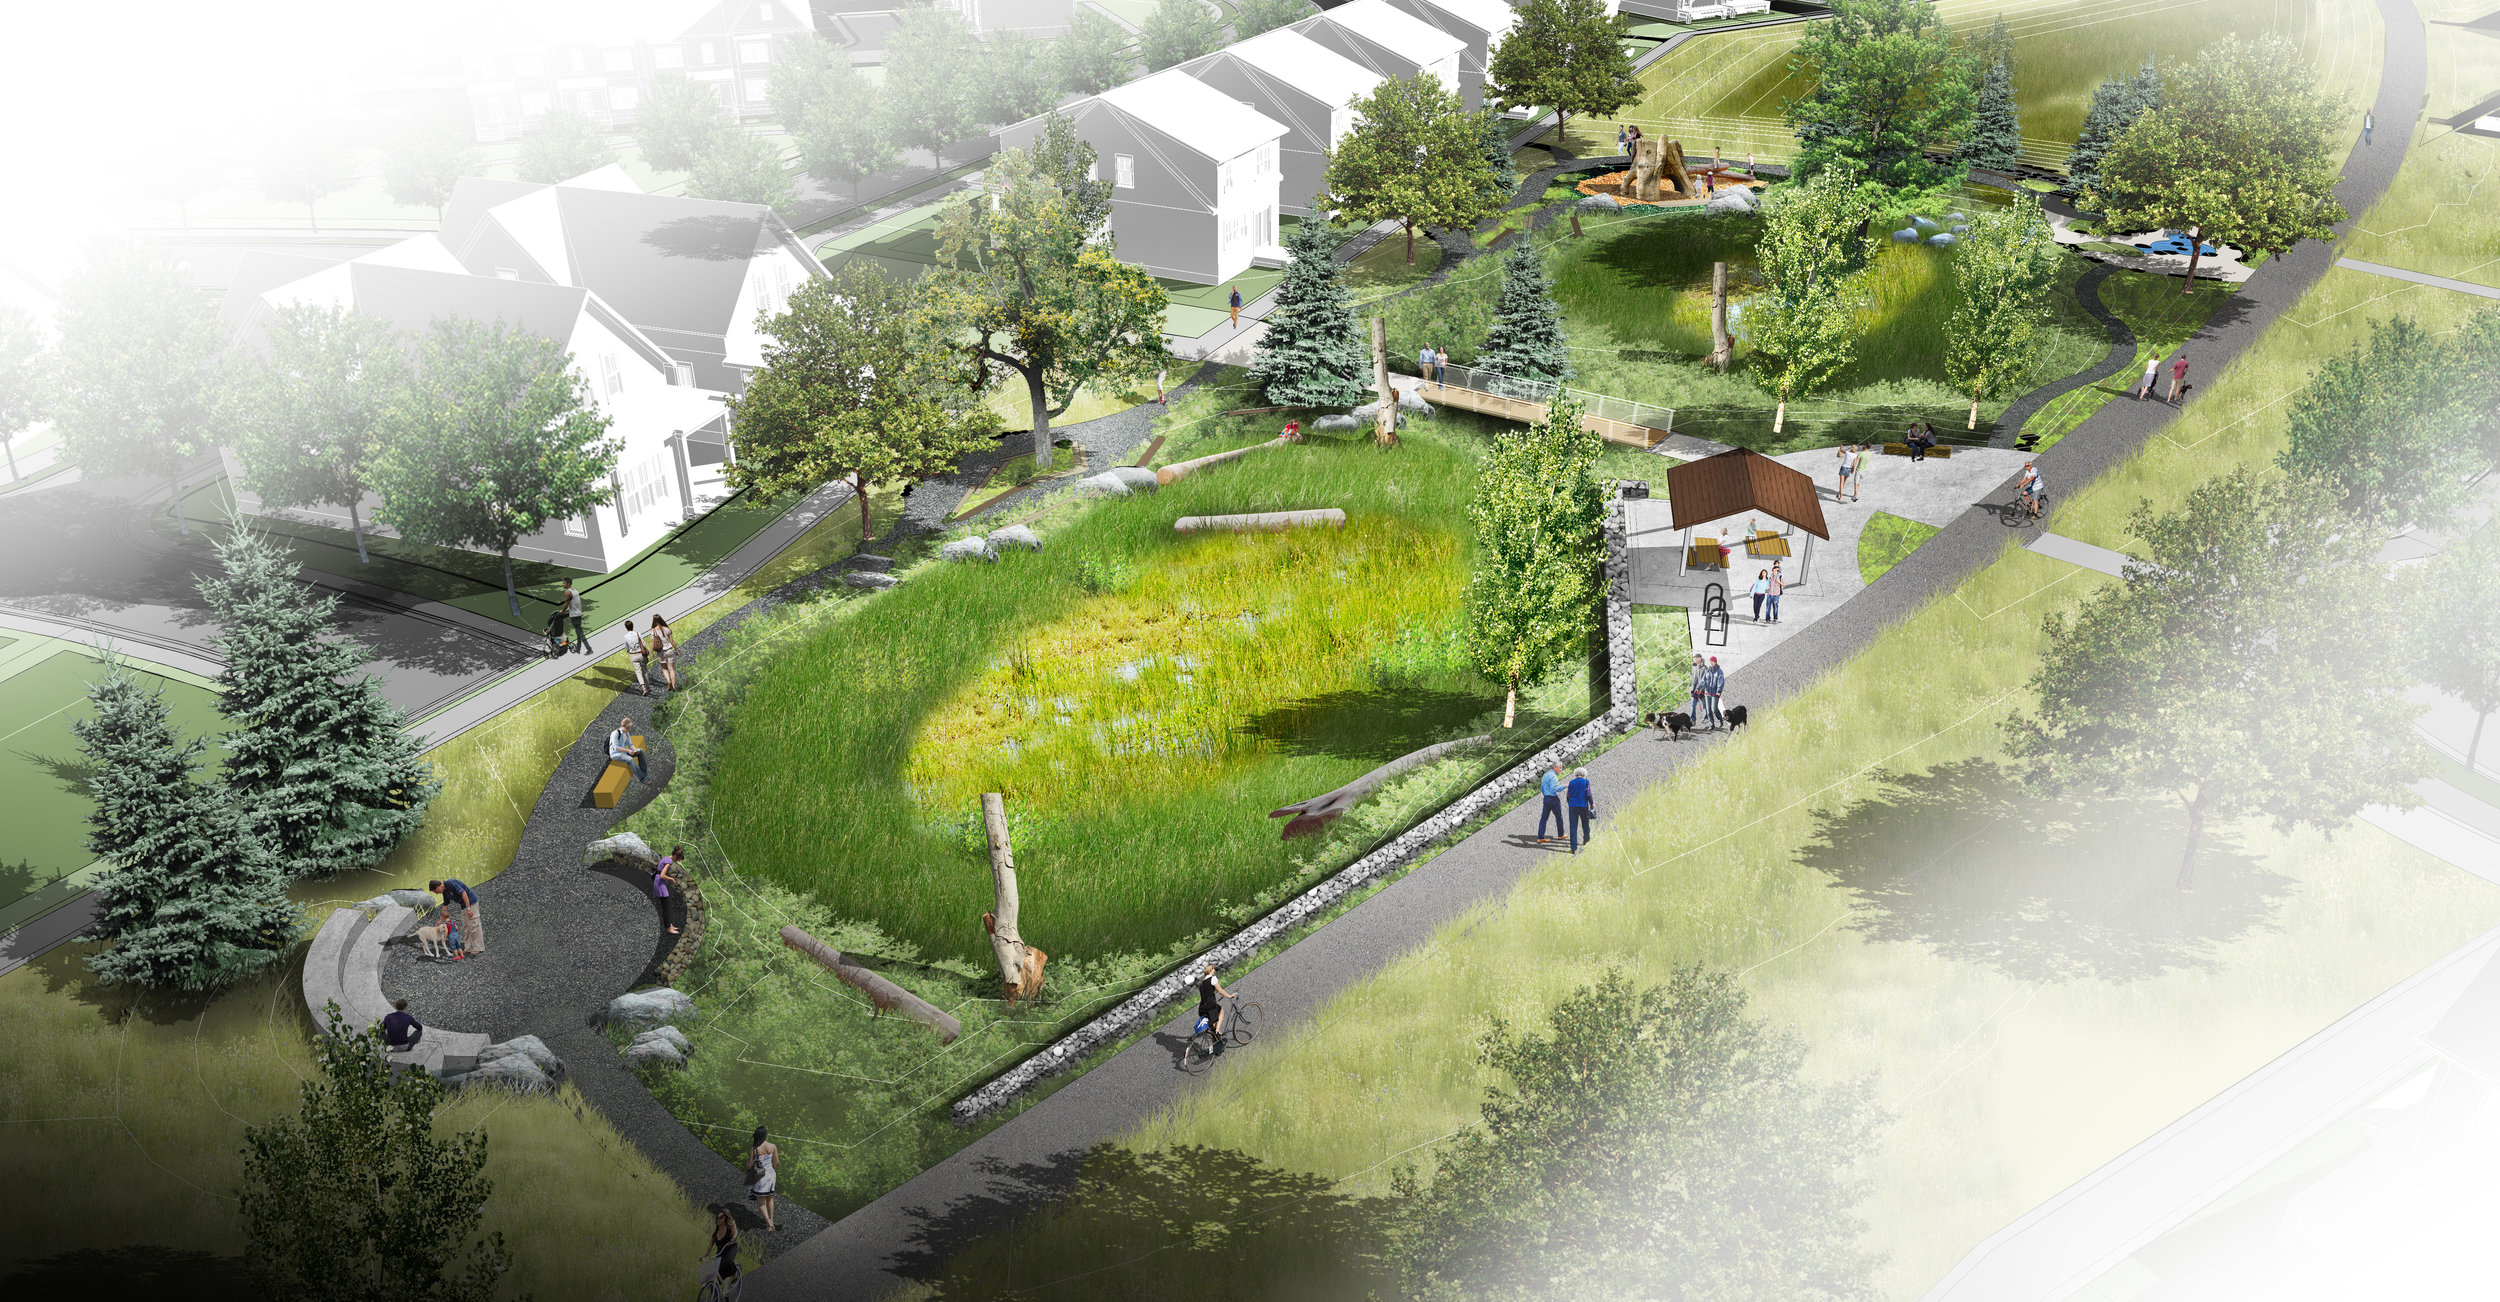 illustration of basin for stormwater management as a rain garden